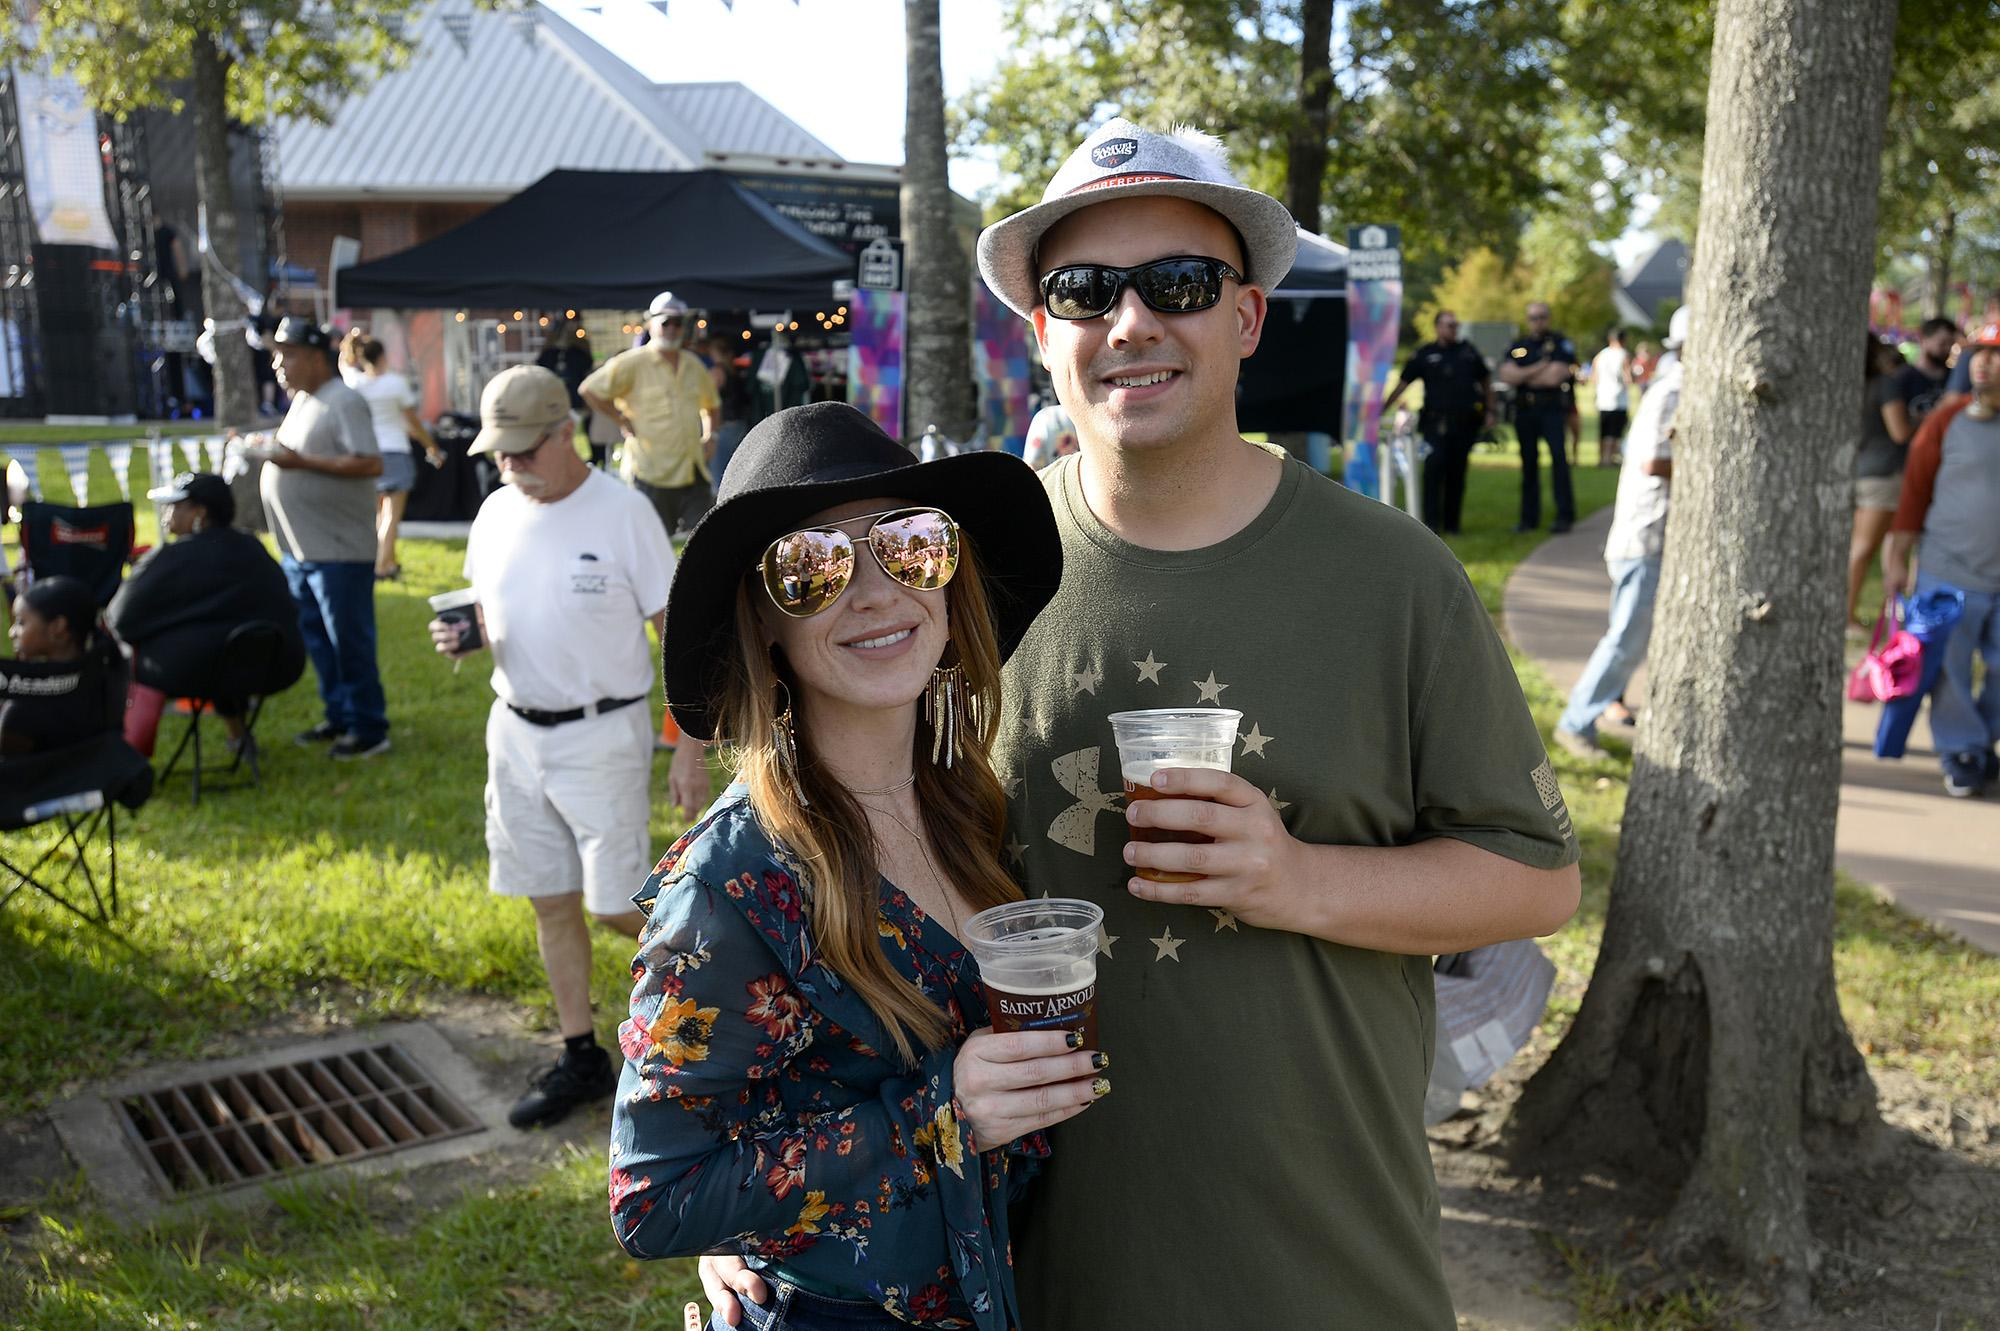 50 things to do Sept. 26, 27, 28 and 29